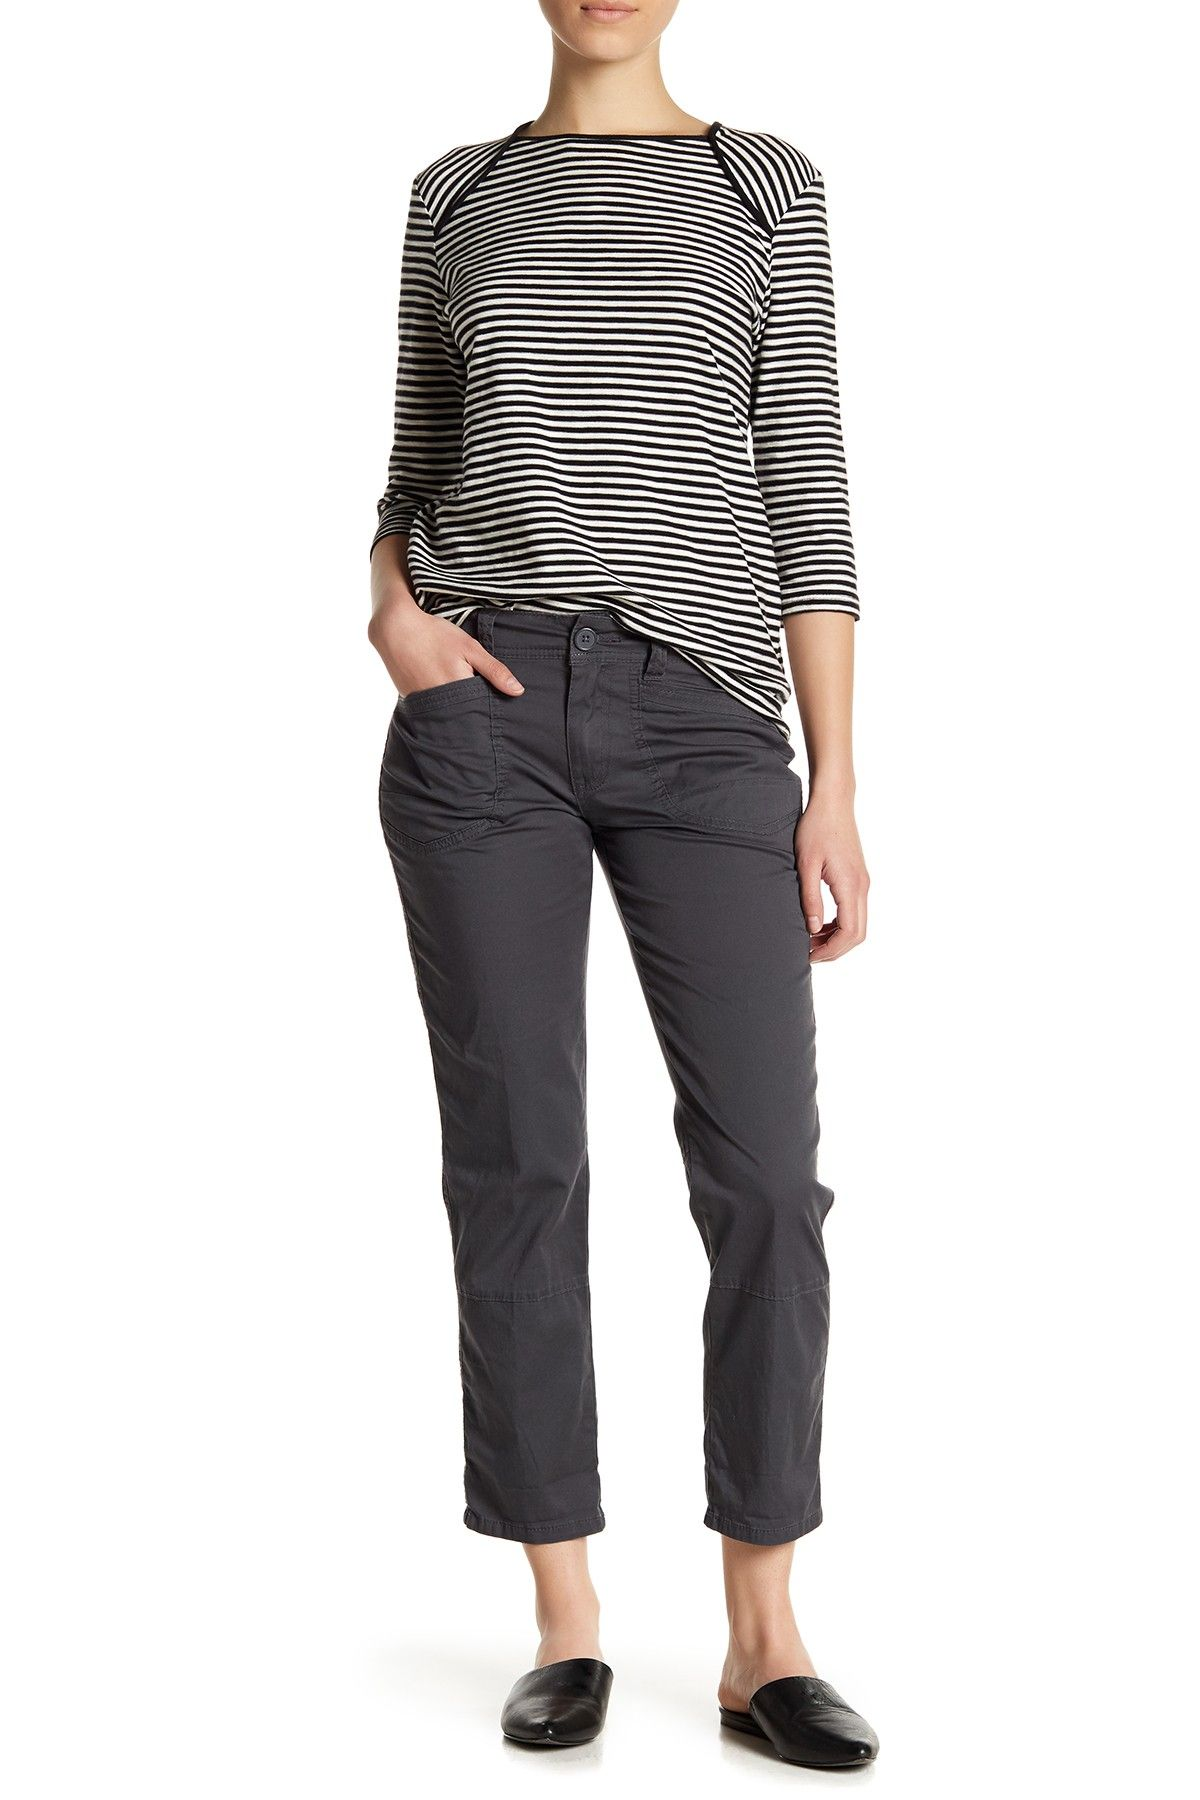 wife-whitestag-petite-poly-cotton-twill-pants-college